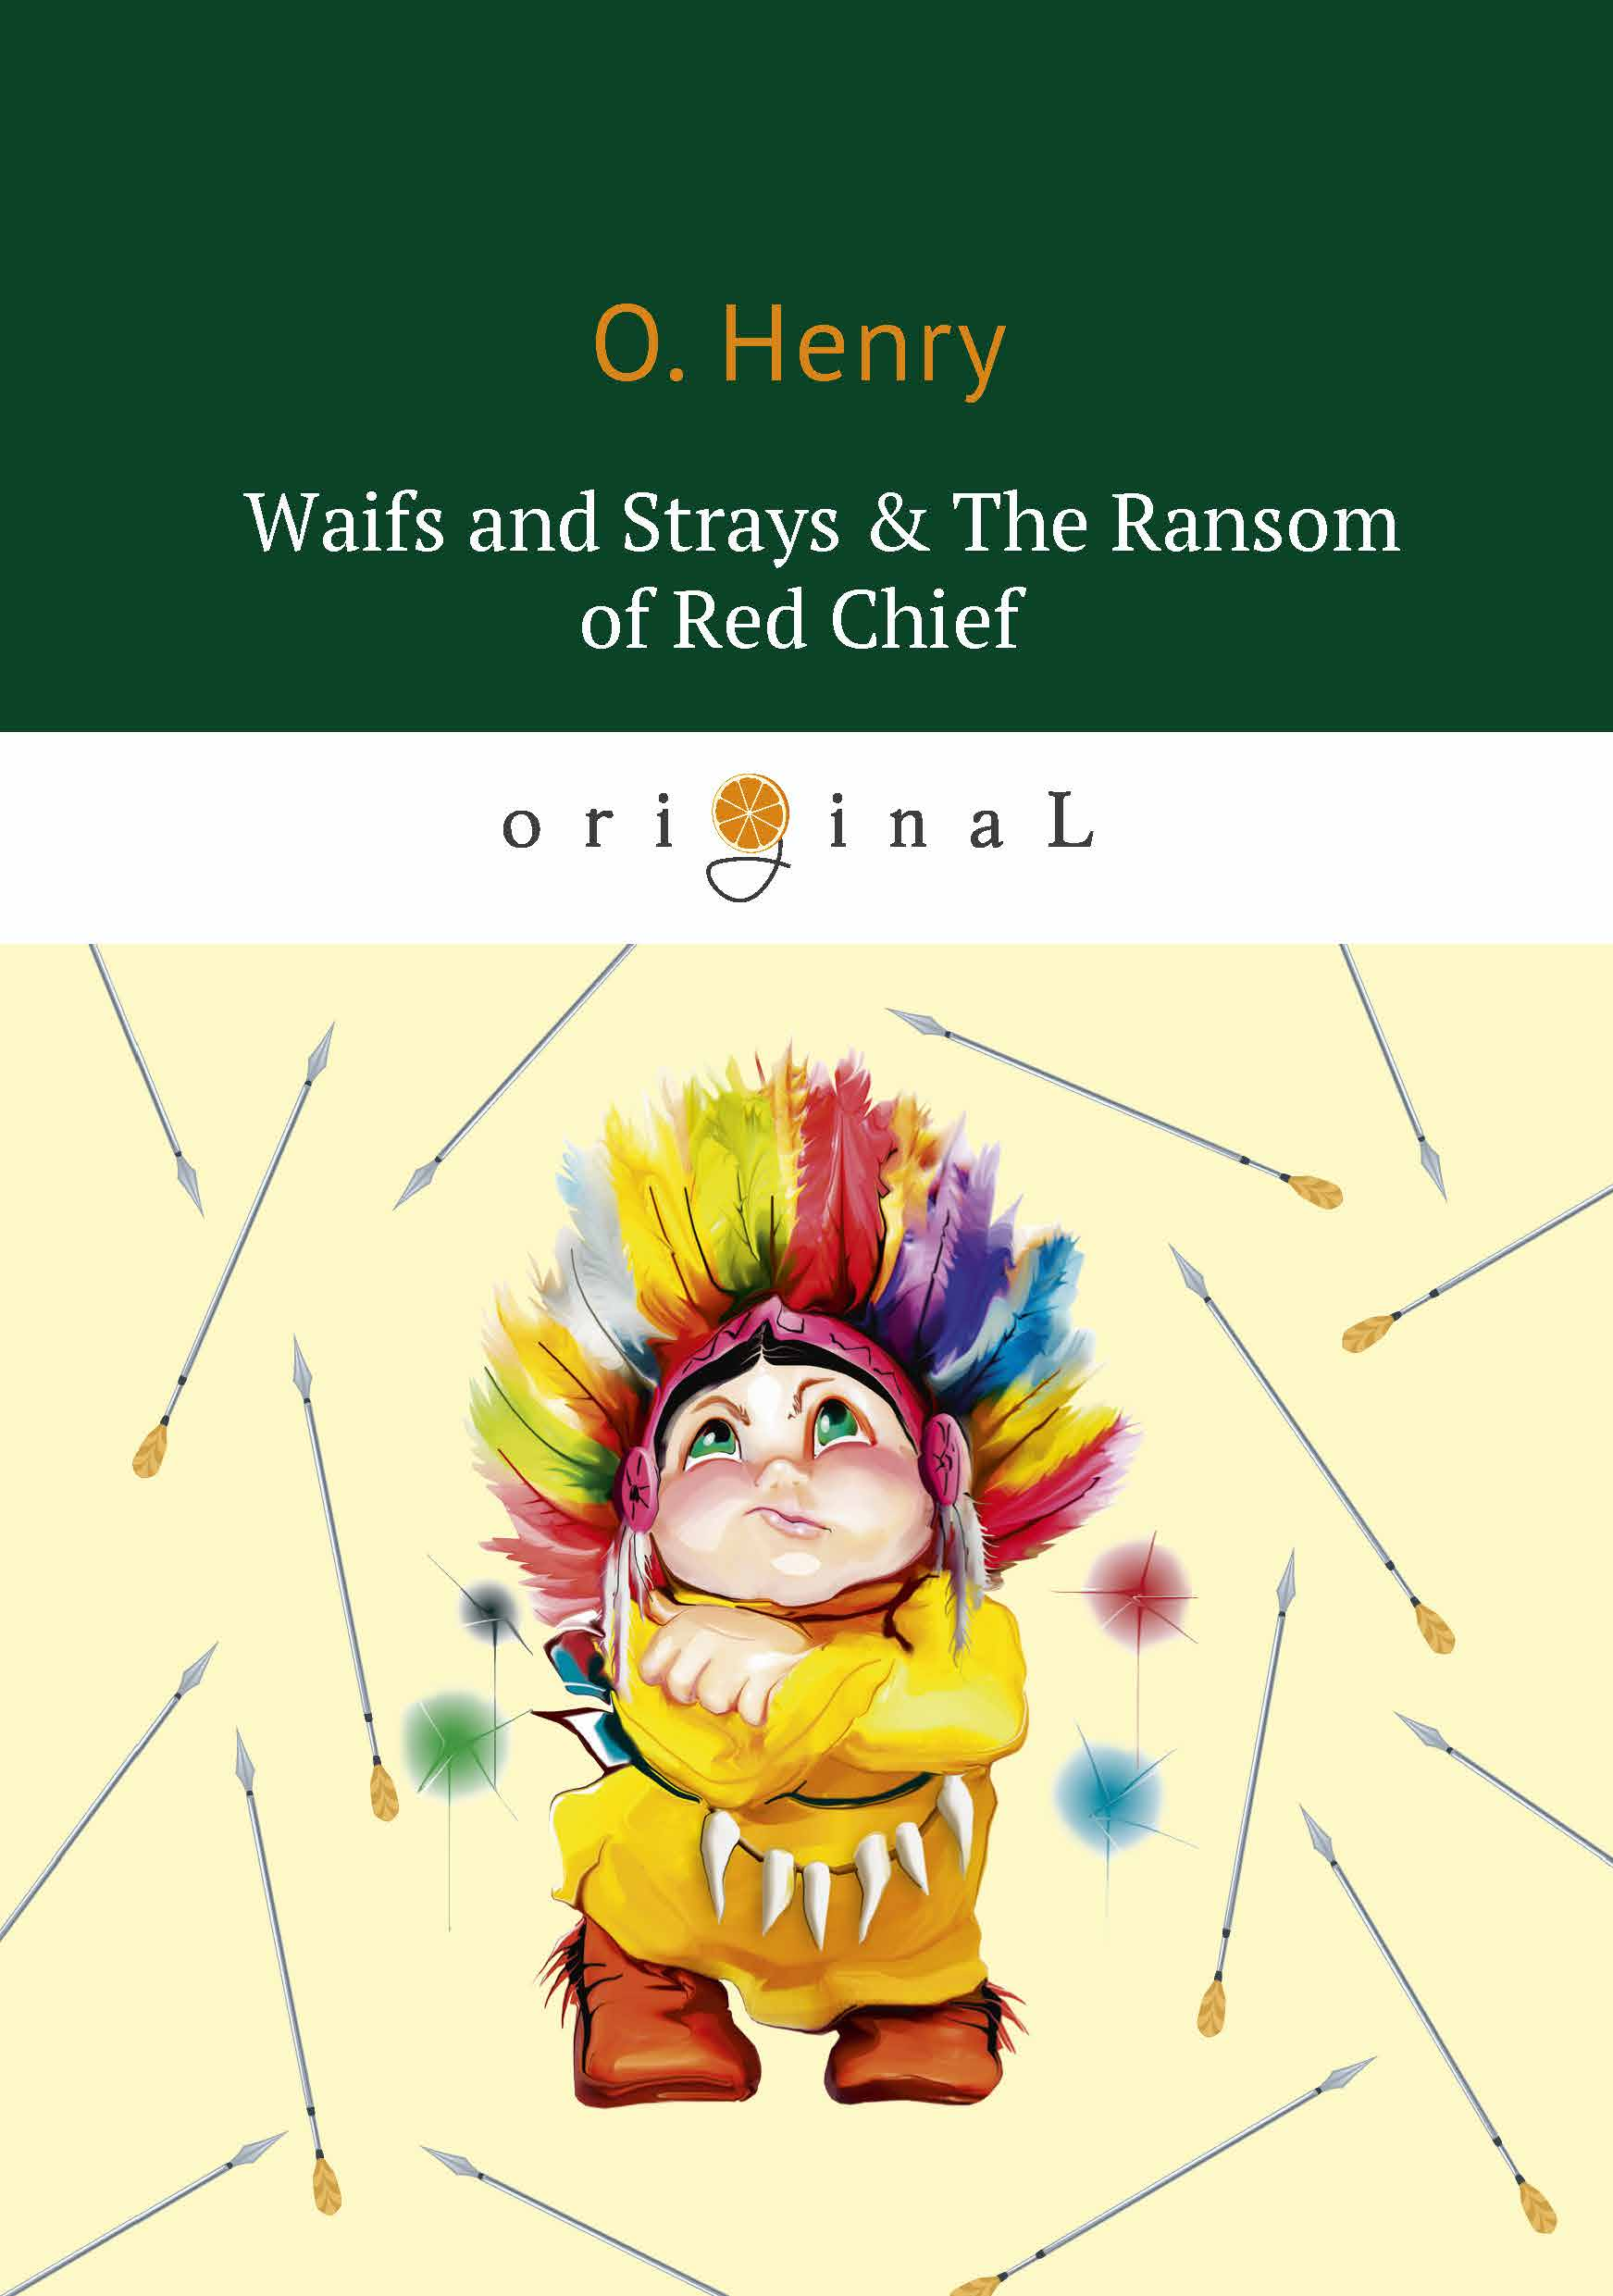 O. Henry Waifs and Strays & The Ransom of Red Chief ISBN: 978-5-521-07064-0 henry o short series isbn 9785949621950